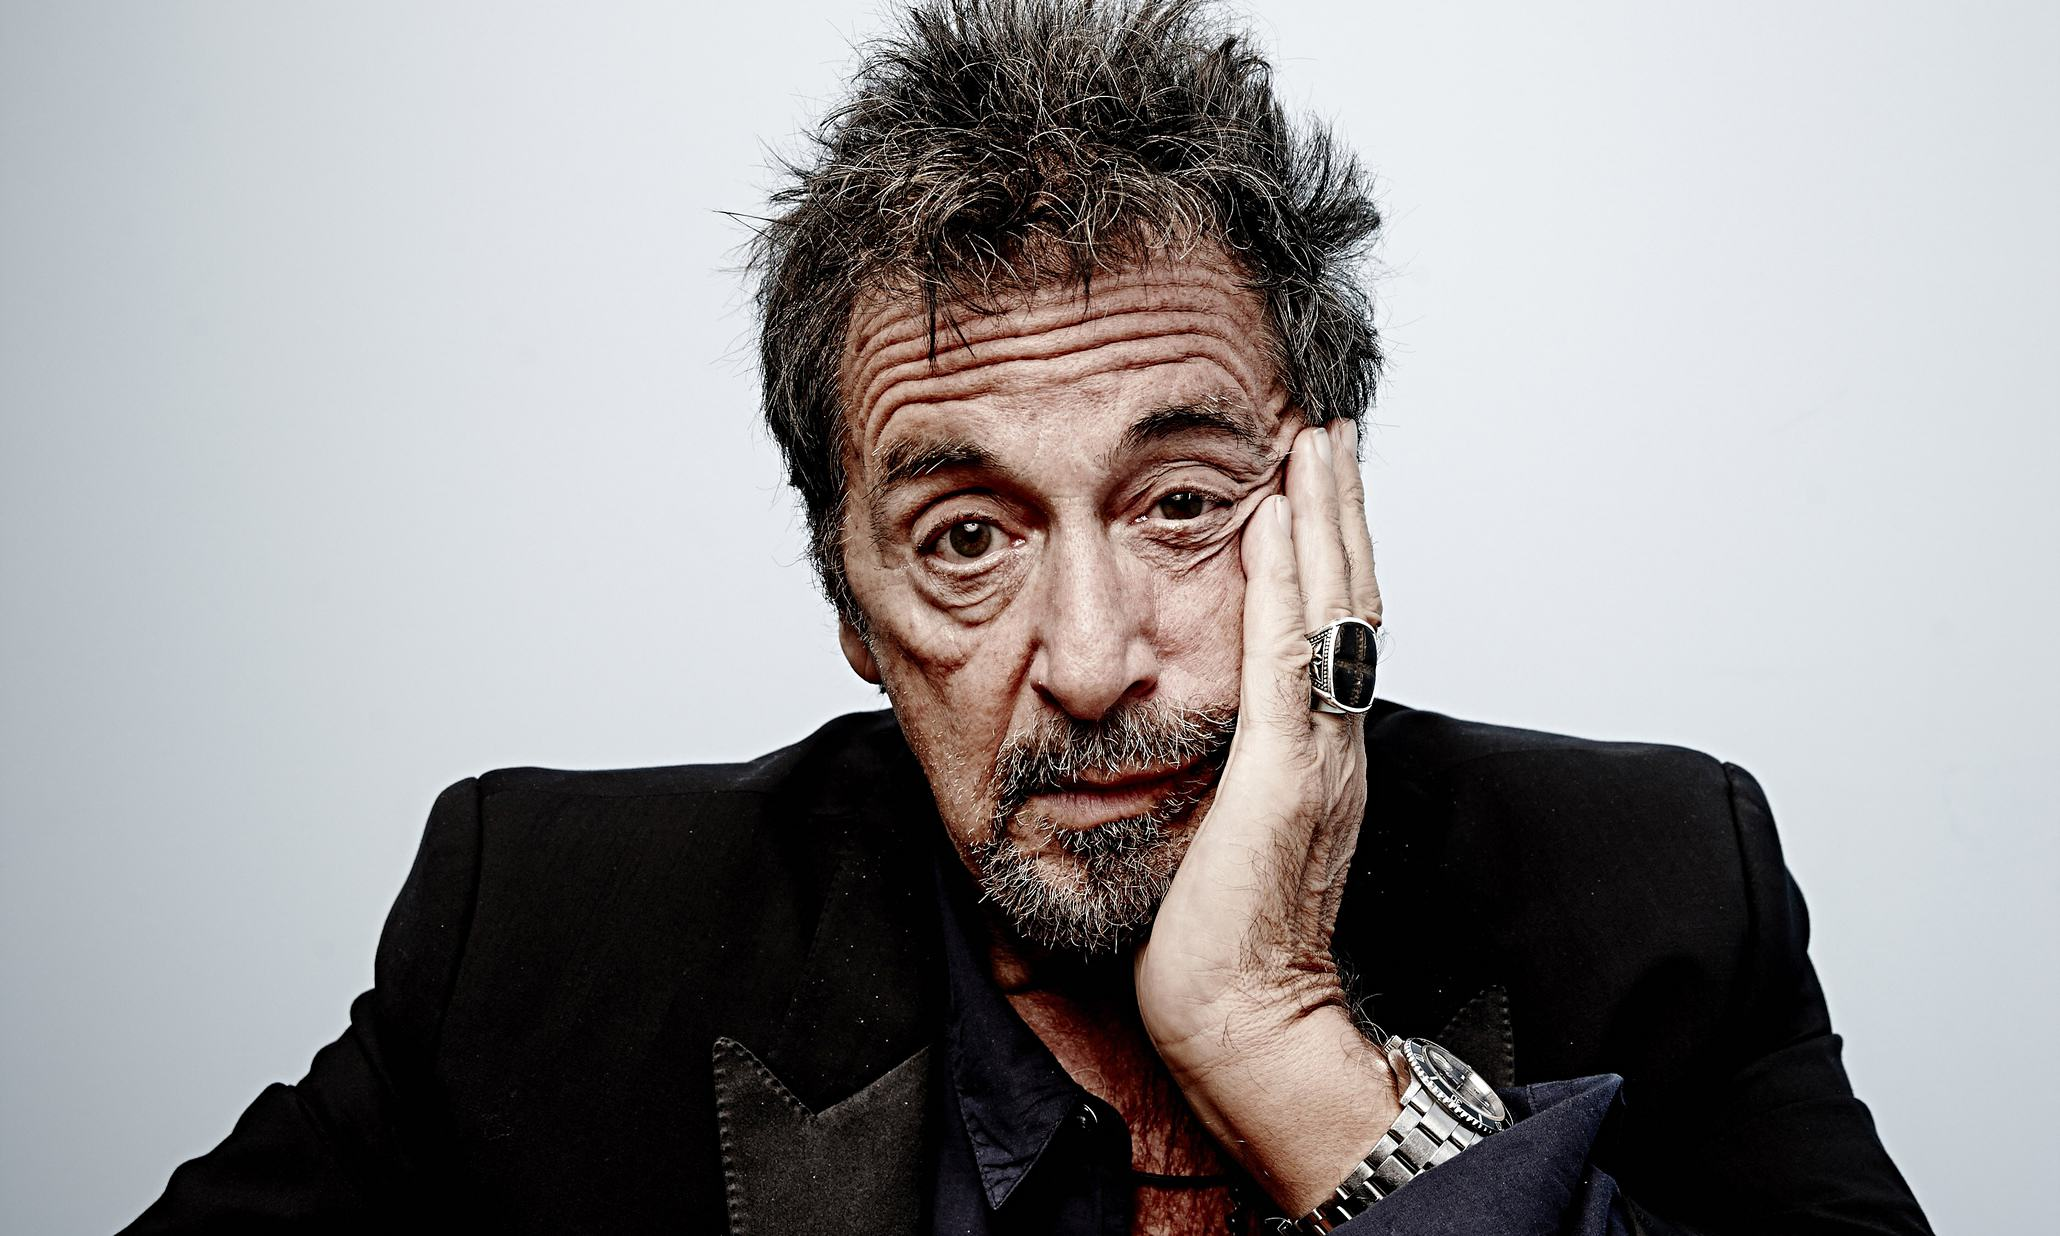 UNILAD Al Pacino sits his face l 0098 Robert De Niro, Joe Pesci And Al Pacino Will Star In New Film